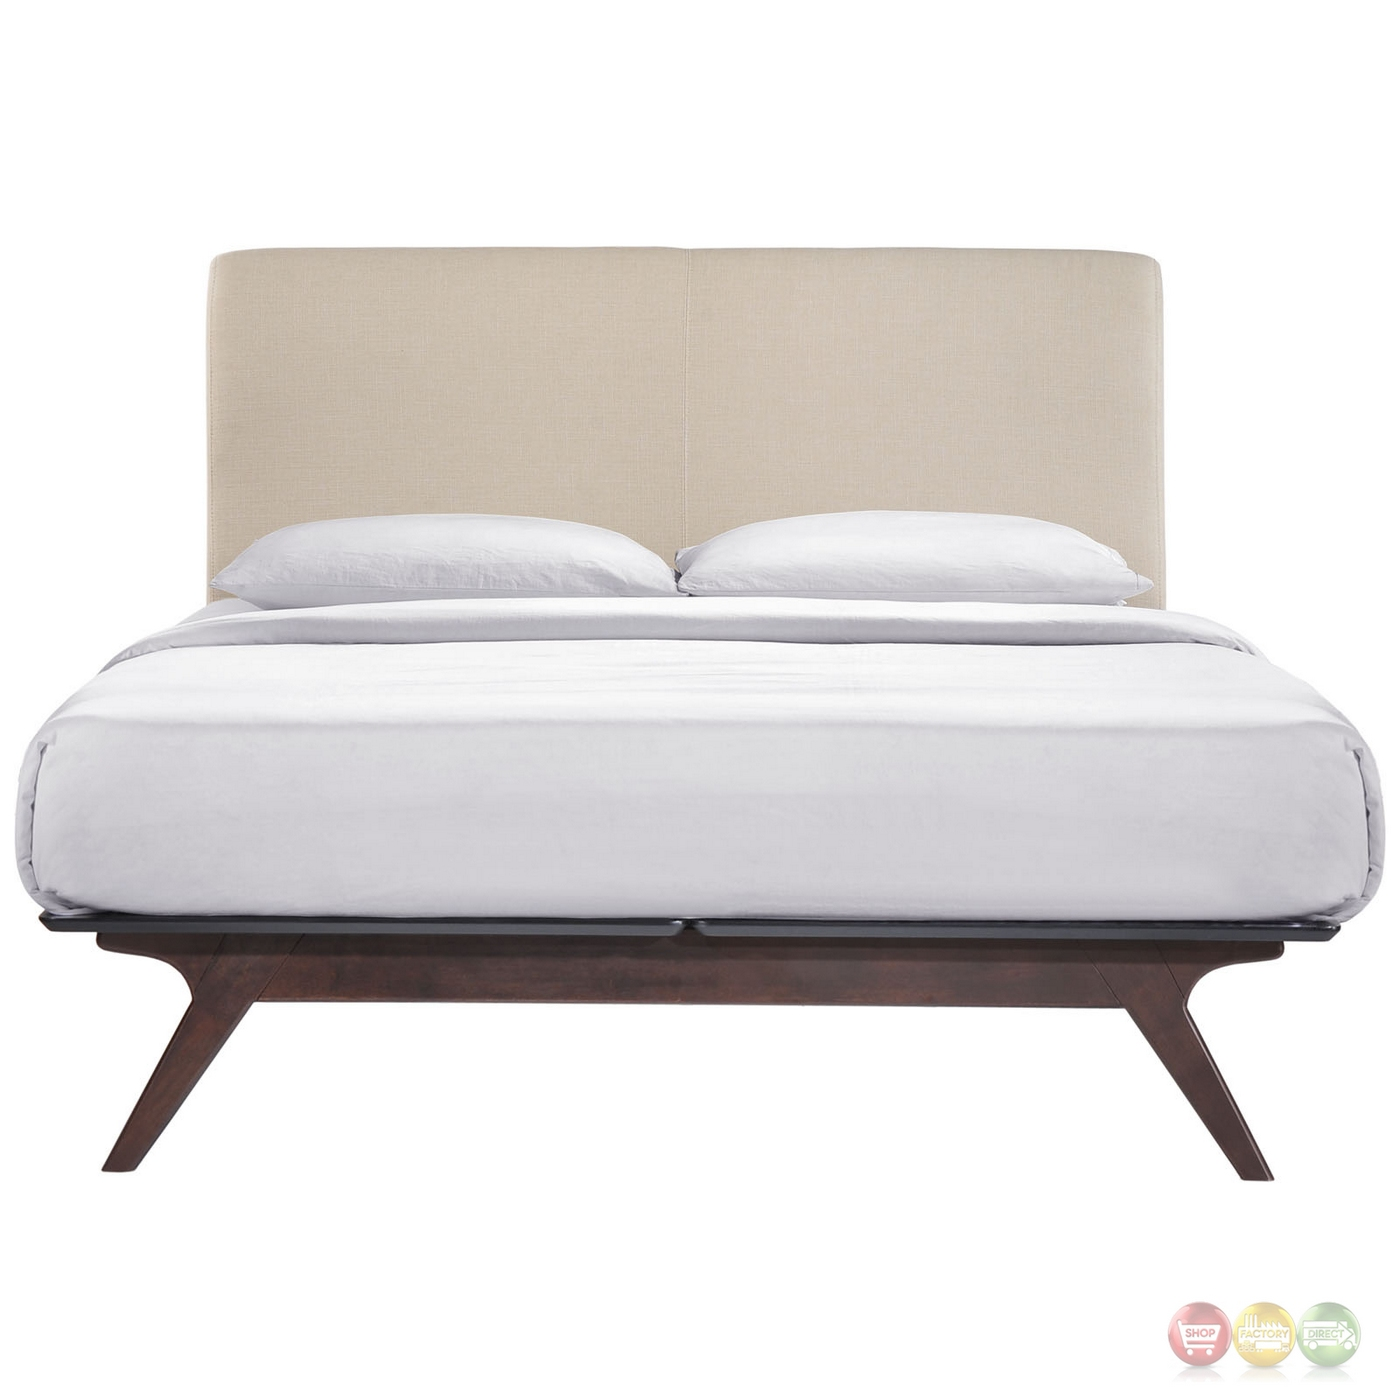 tracy contemporary upholstered platform king bed cappuccino beige. Black Bedroom Furniture Sets. Home Design Ideas